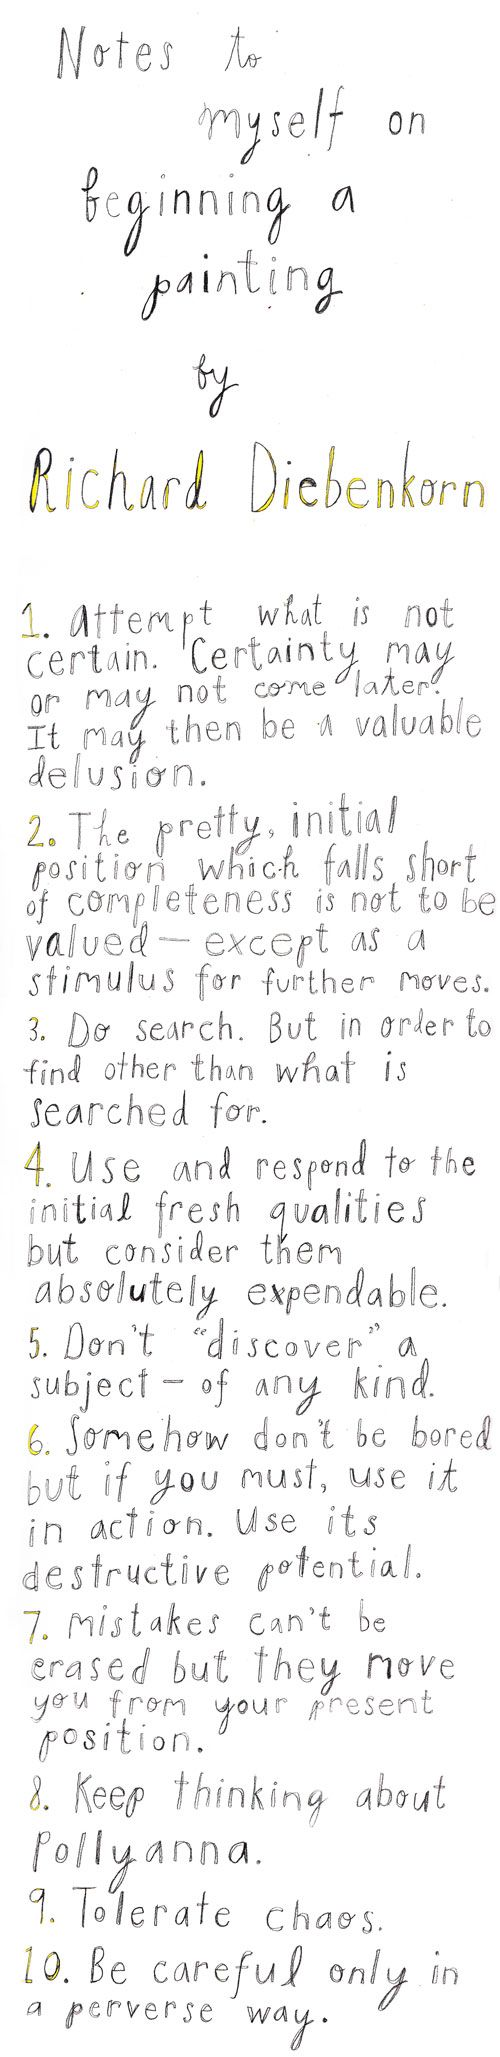 10 Rules for Creative Projects from Legendary Painter Richard Diebenkorn | Brain Pickings